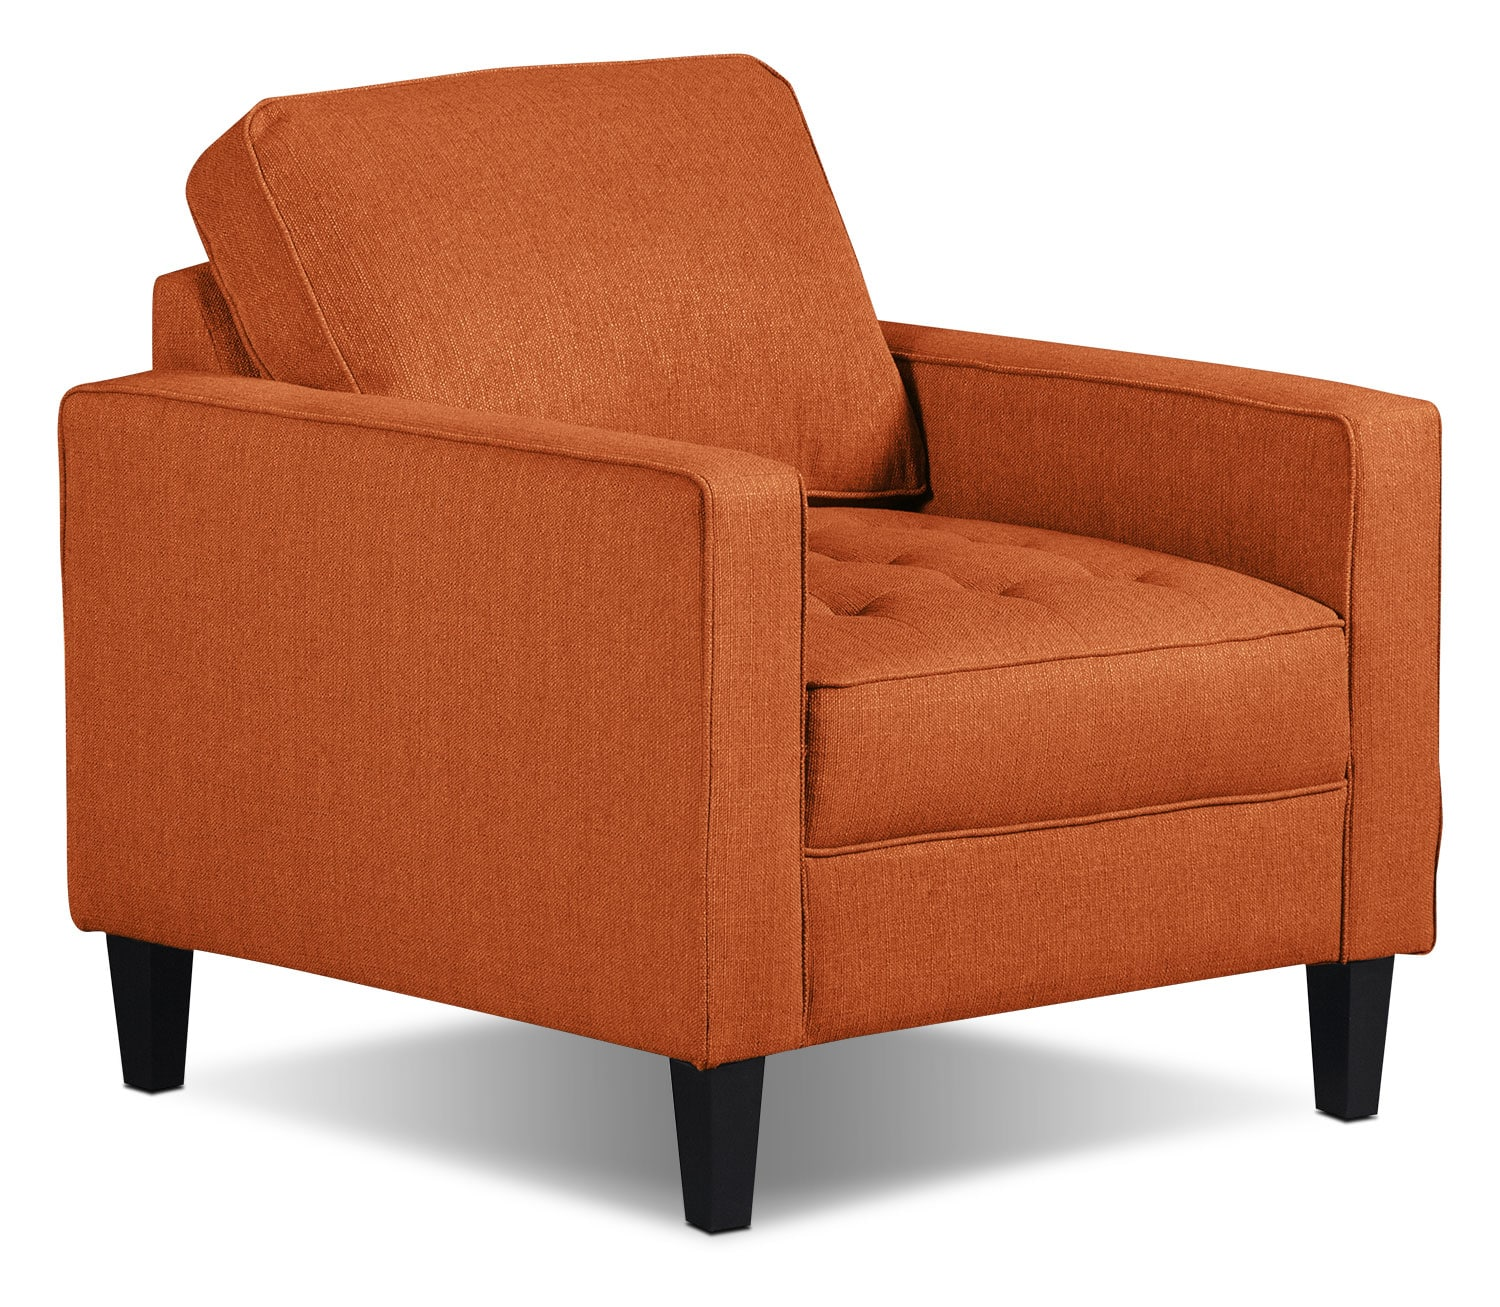 Living Room Furniture - Paris Linen-Look Fabric Chair – Tangerine